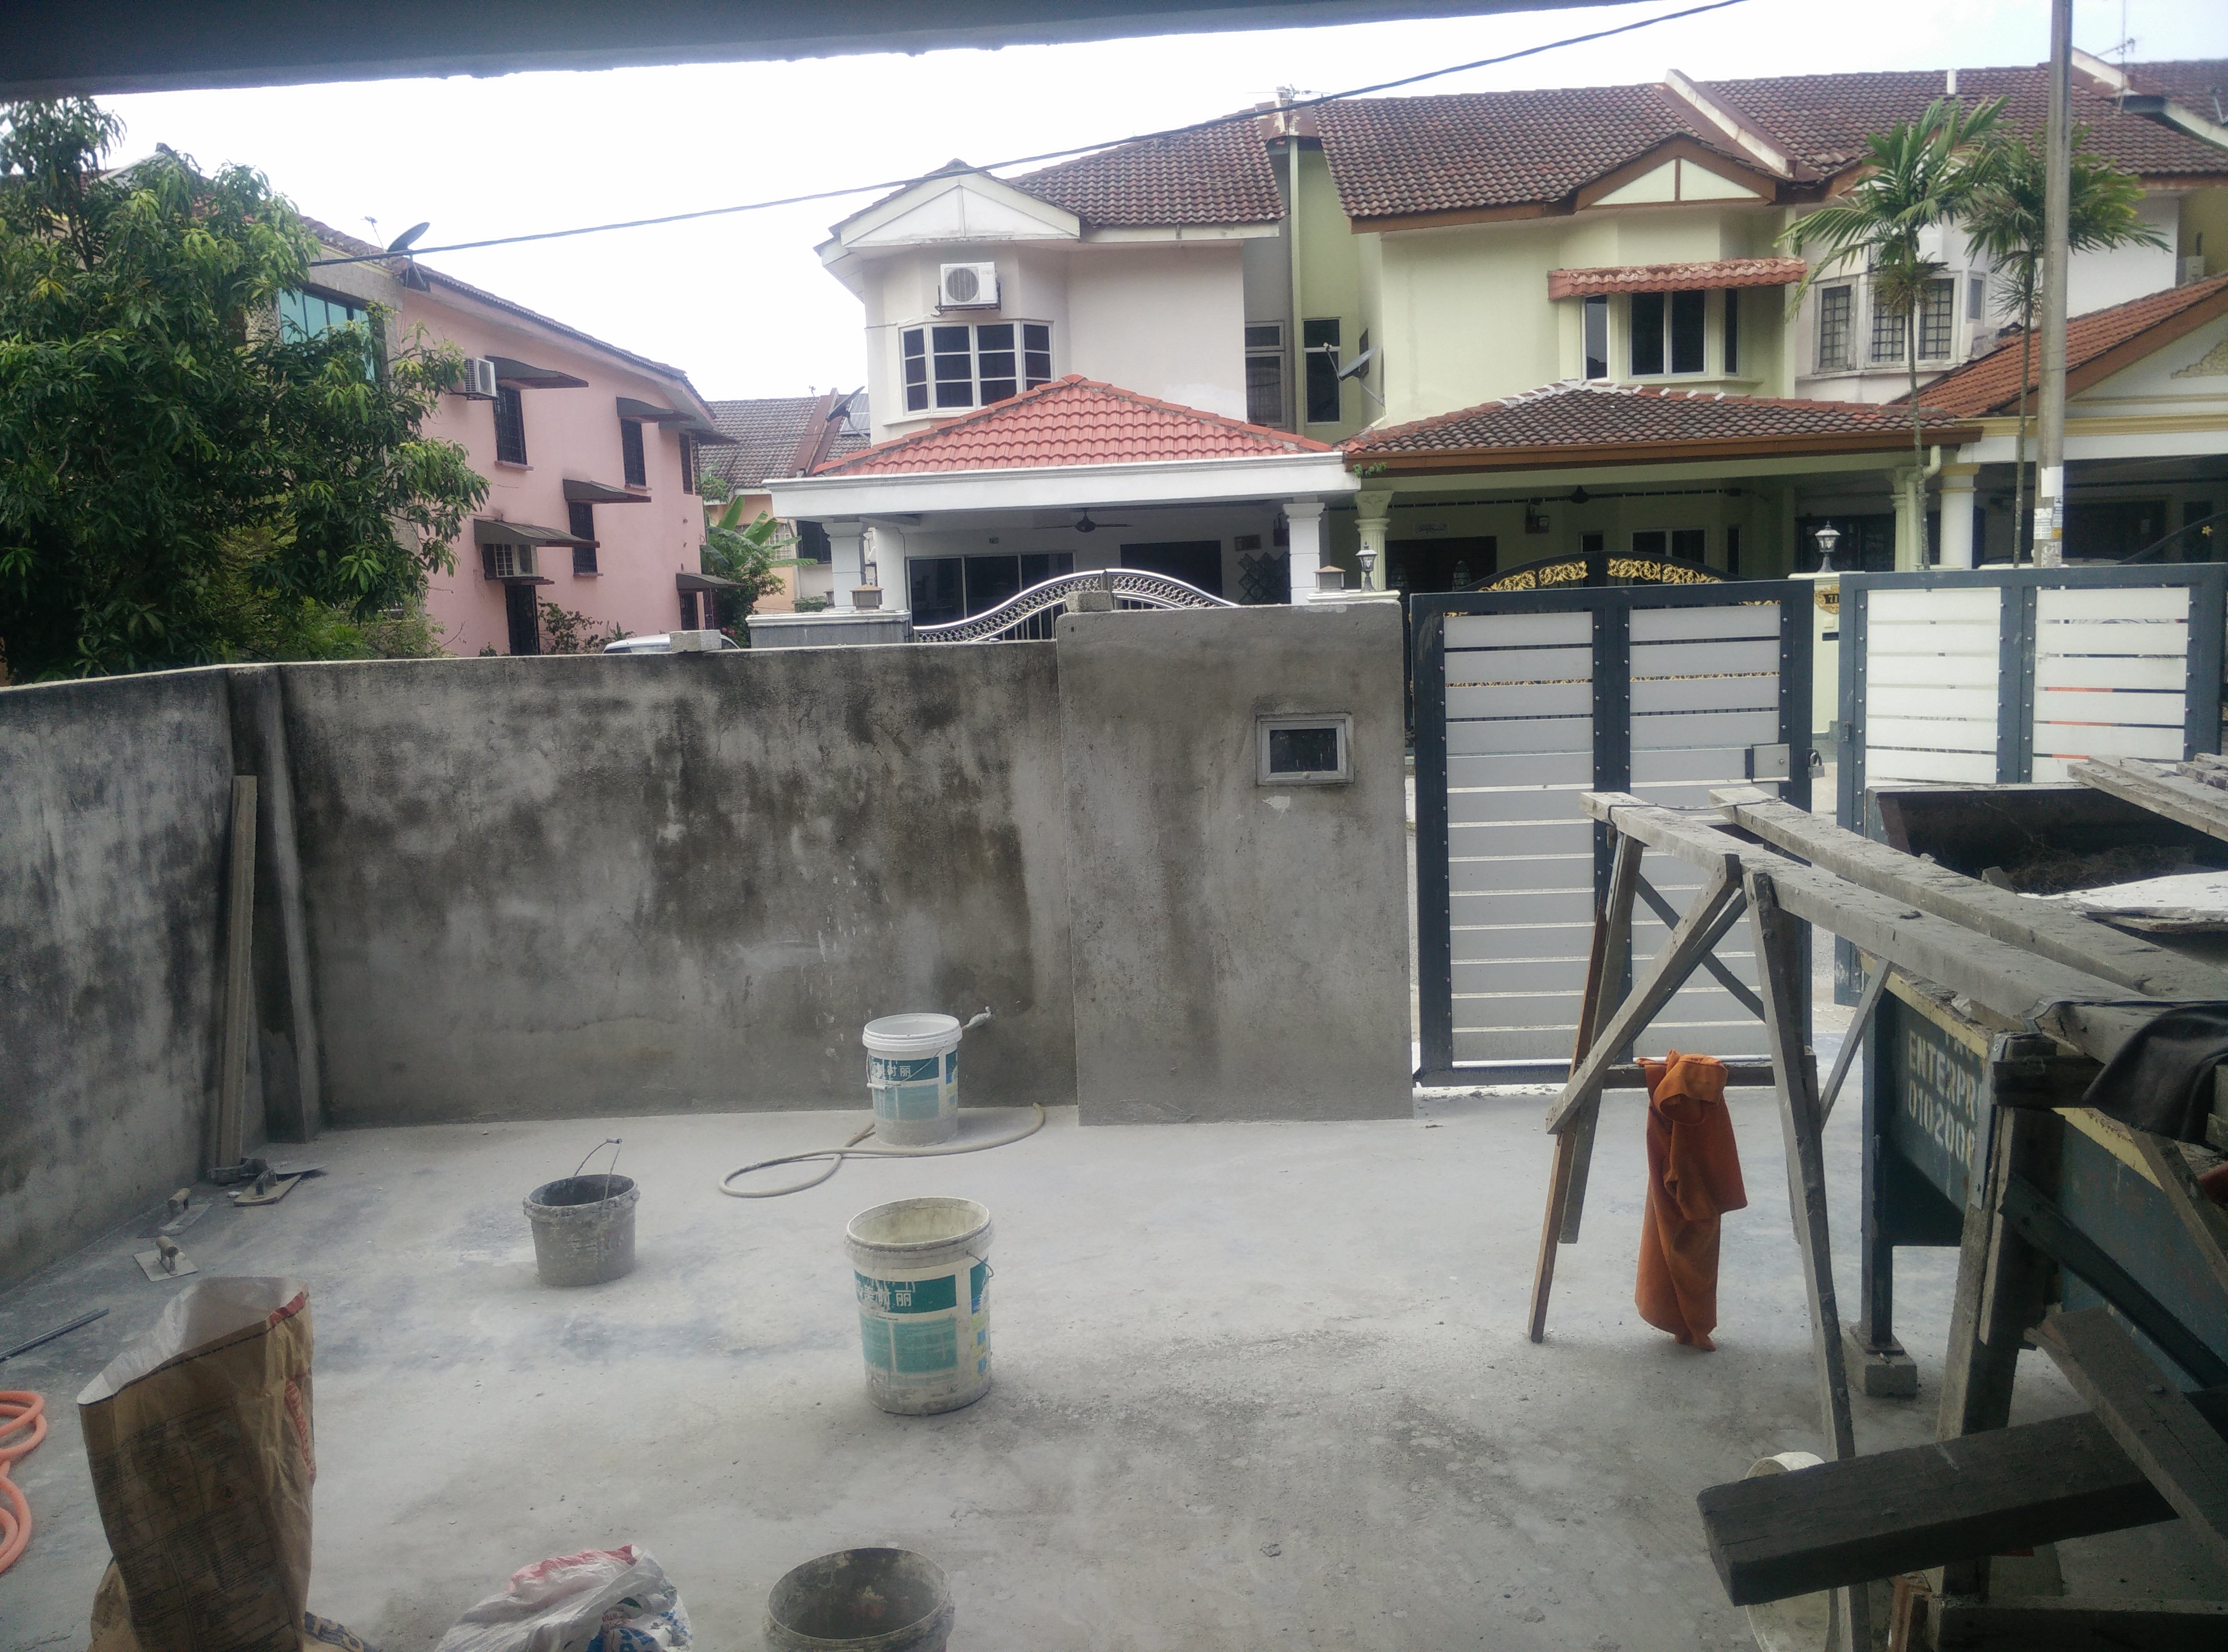 of this work, hereby publish it under the following license: English Renovation work of a two-storey terraced house in Selangor, Malaysia Wikimedia username: